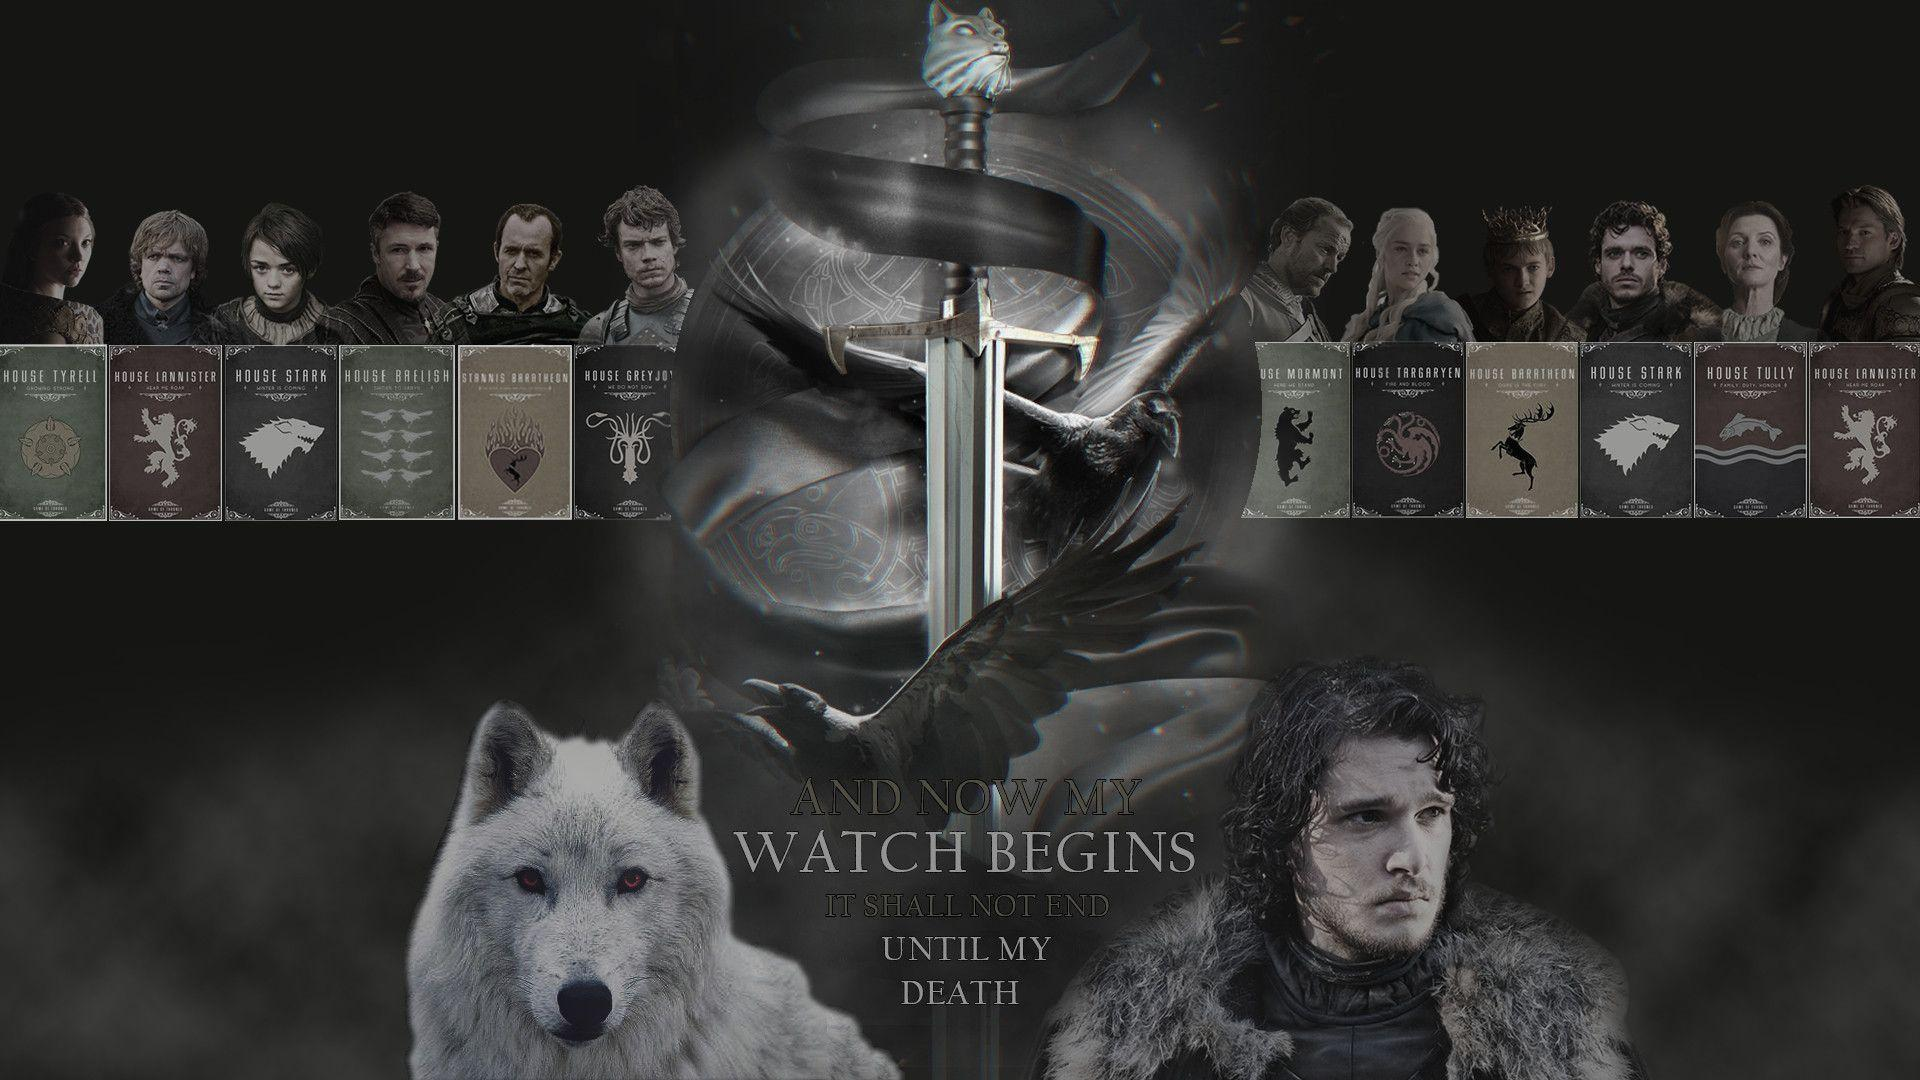 Hd Wallpapers Backgrounds For Game Of Thrones Free For: HBO Game Of Thrones Wallpapers